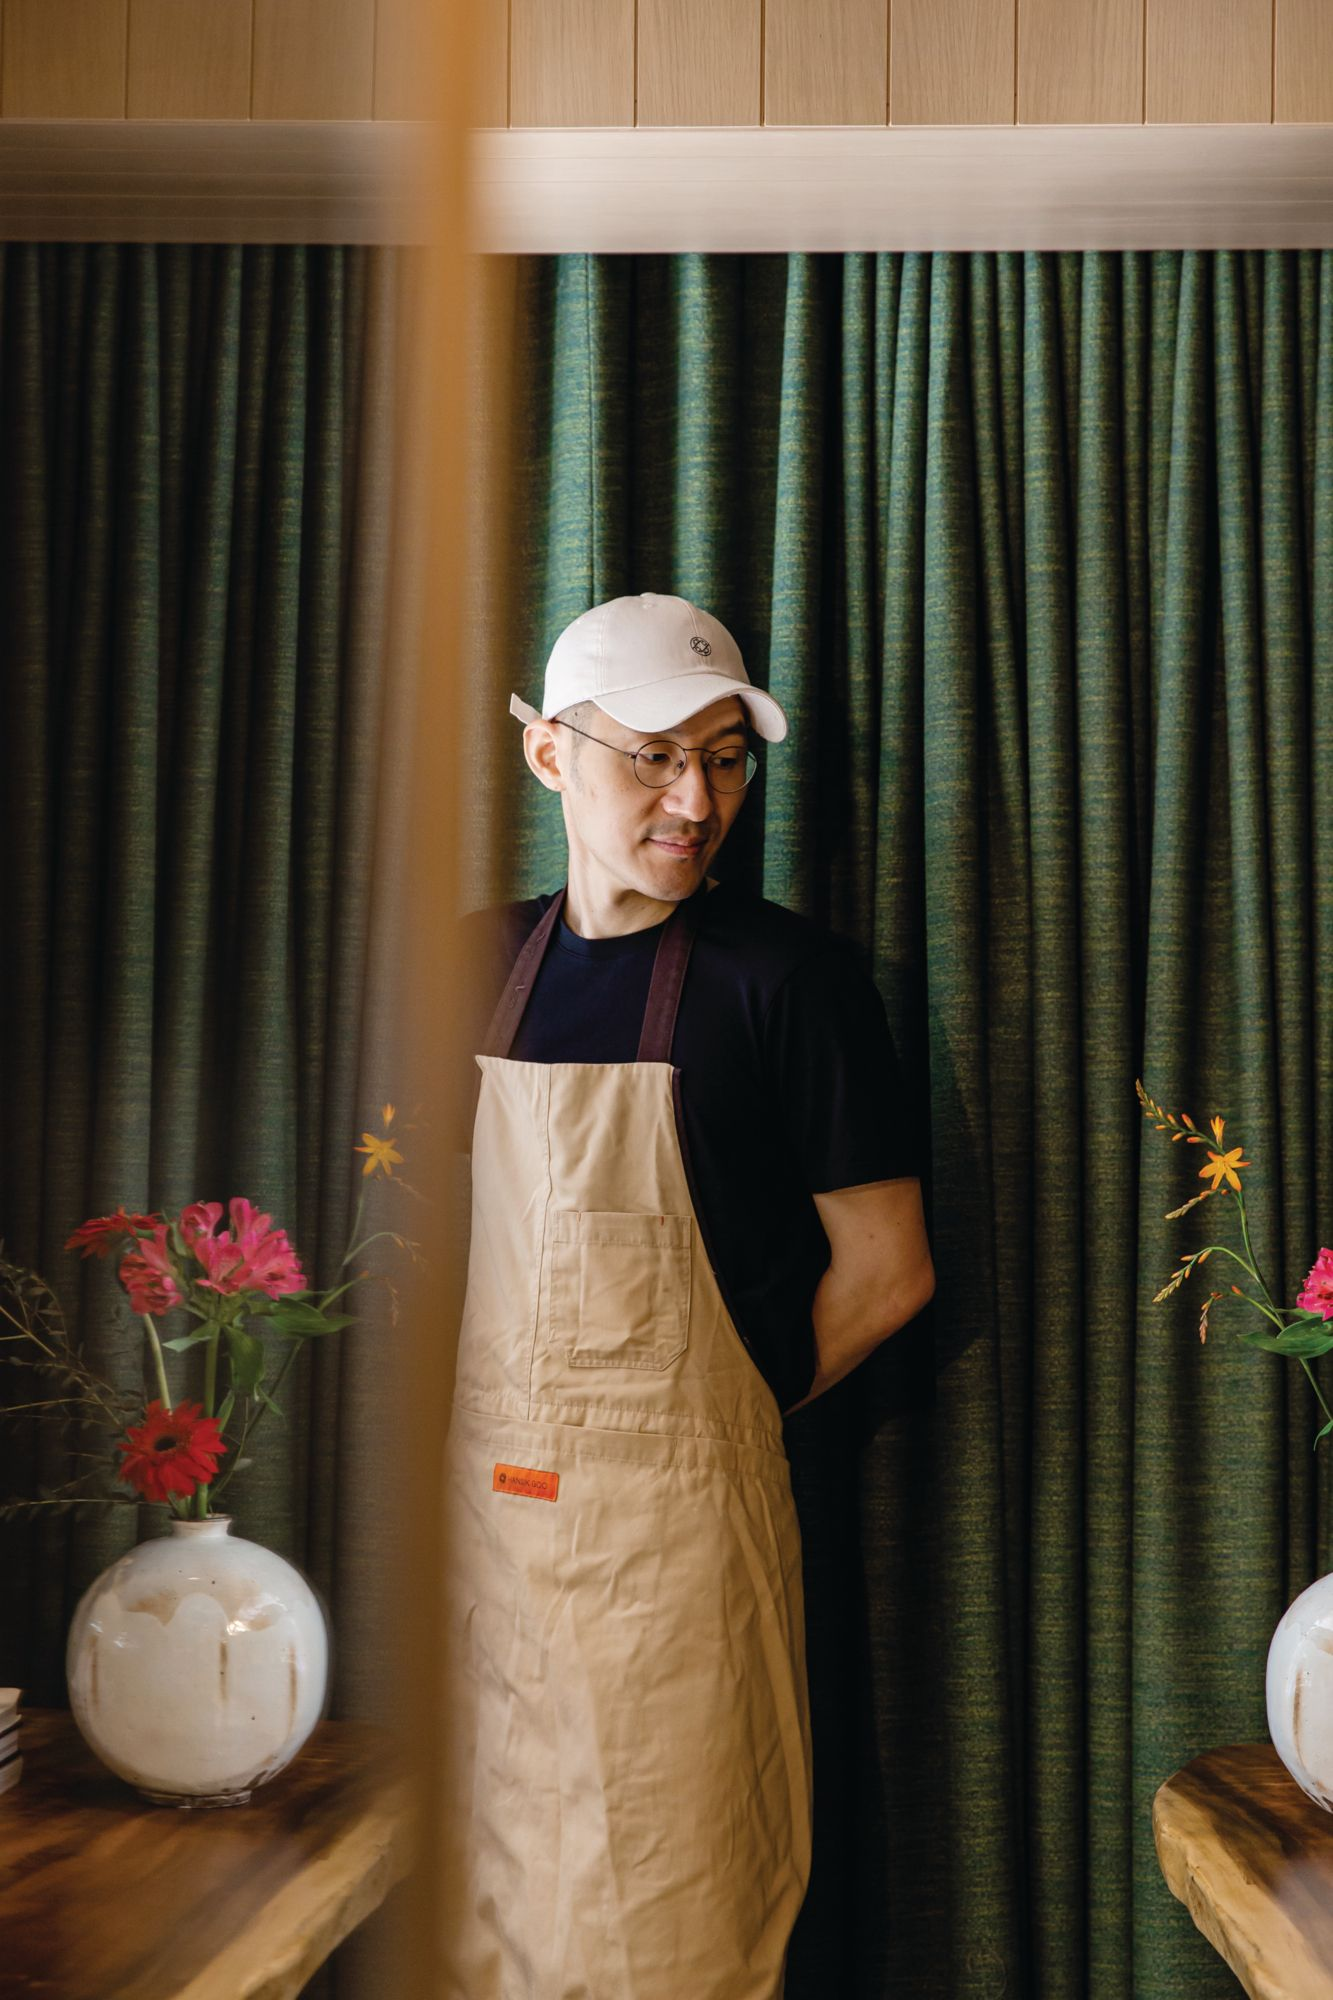 Korean Chef Mingoo Kang On Opening A Restaurant During The Pandemic